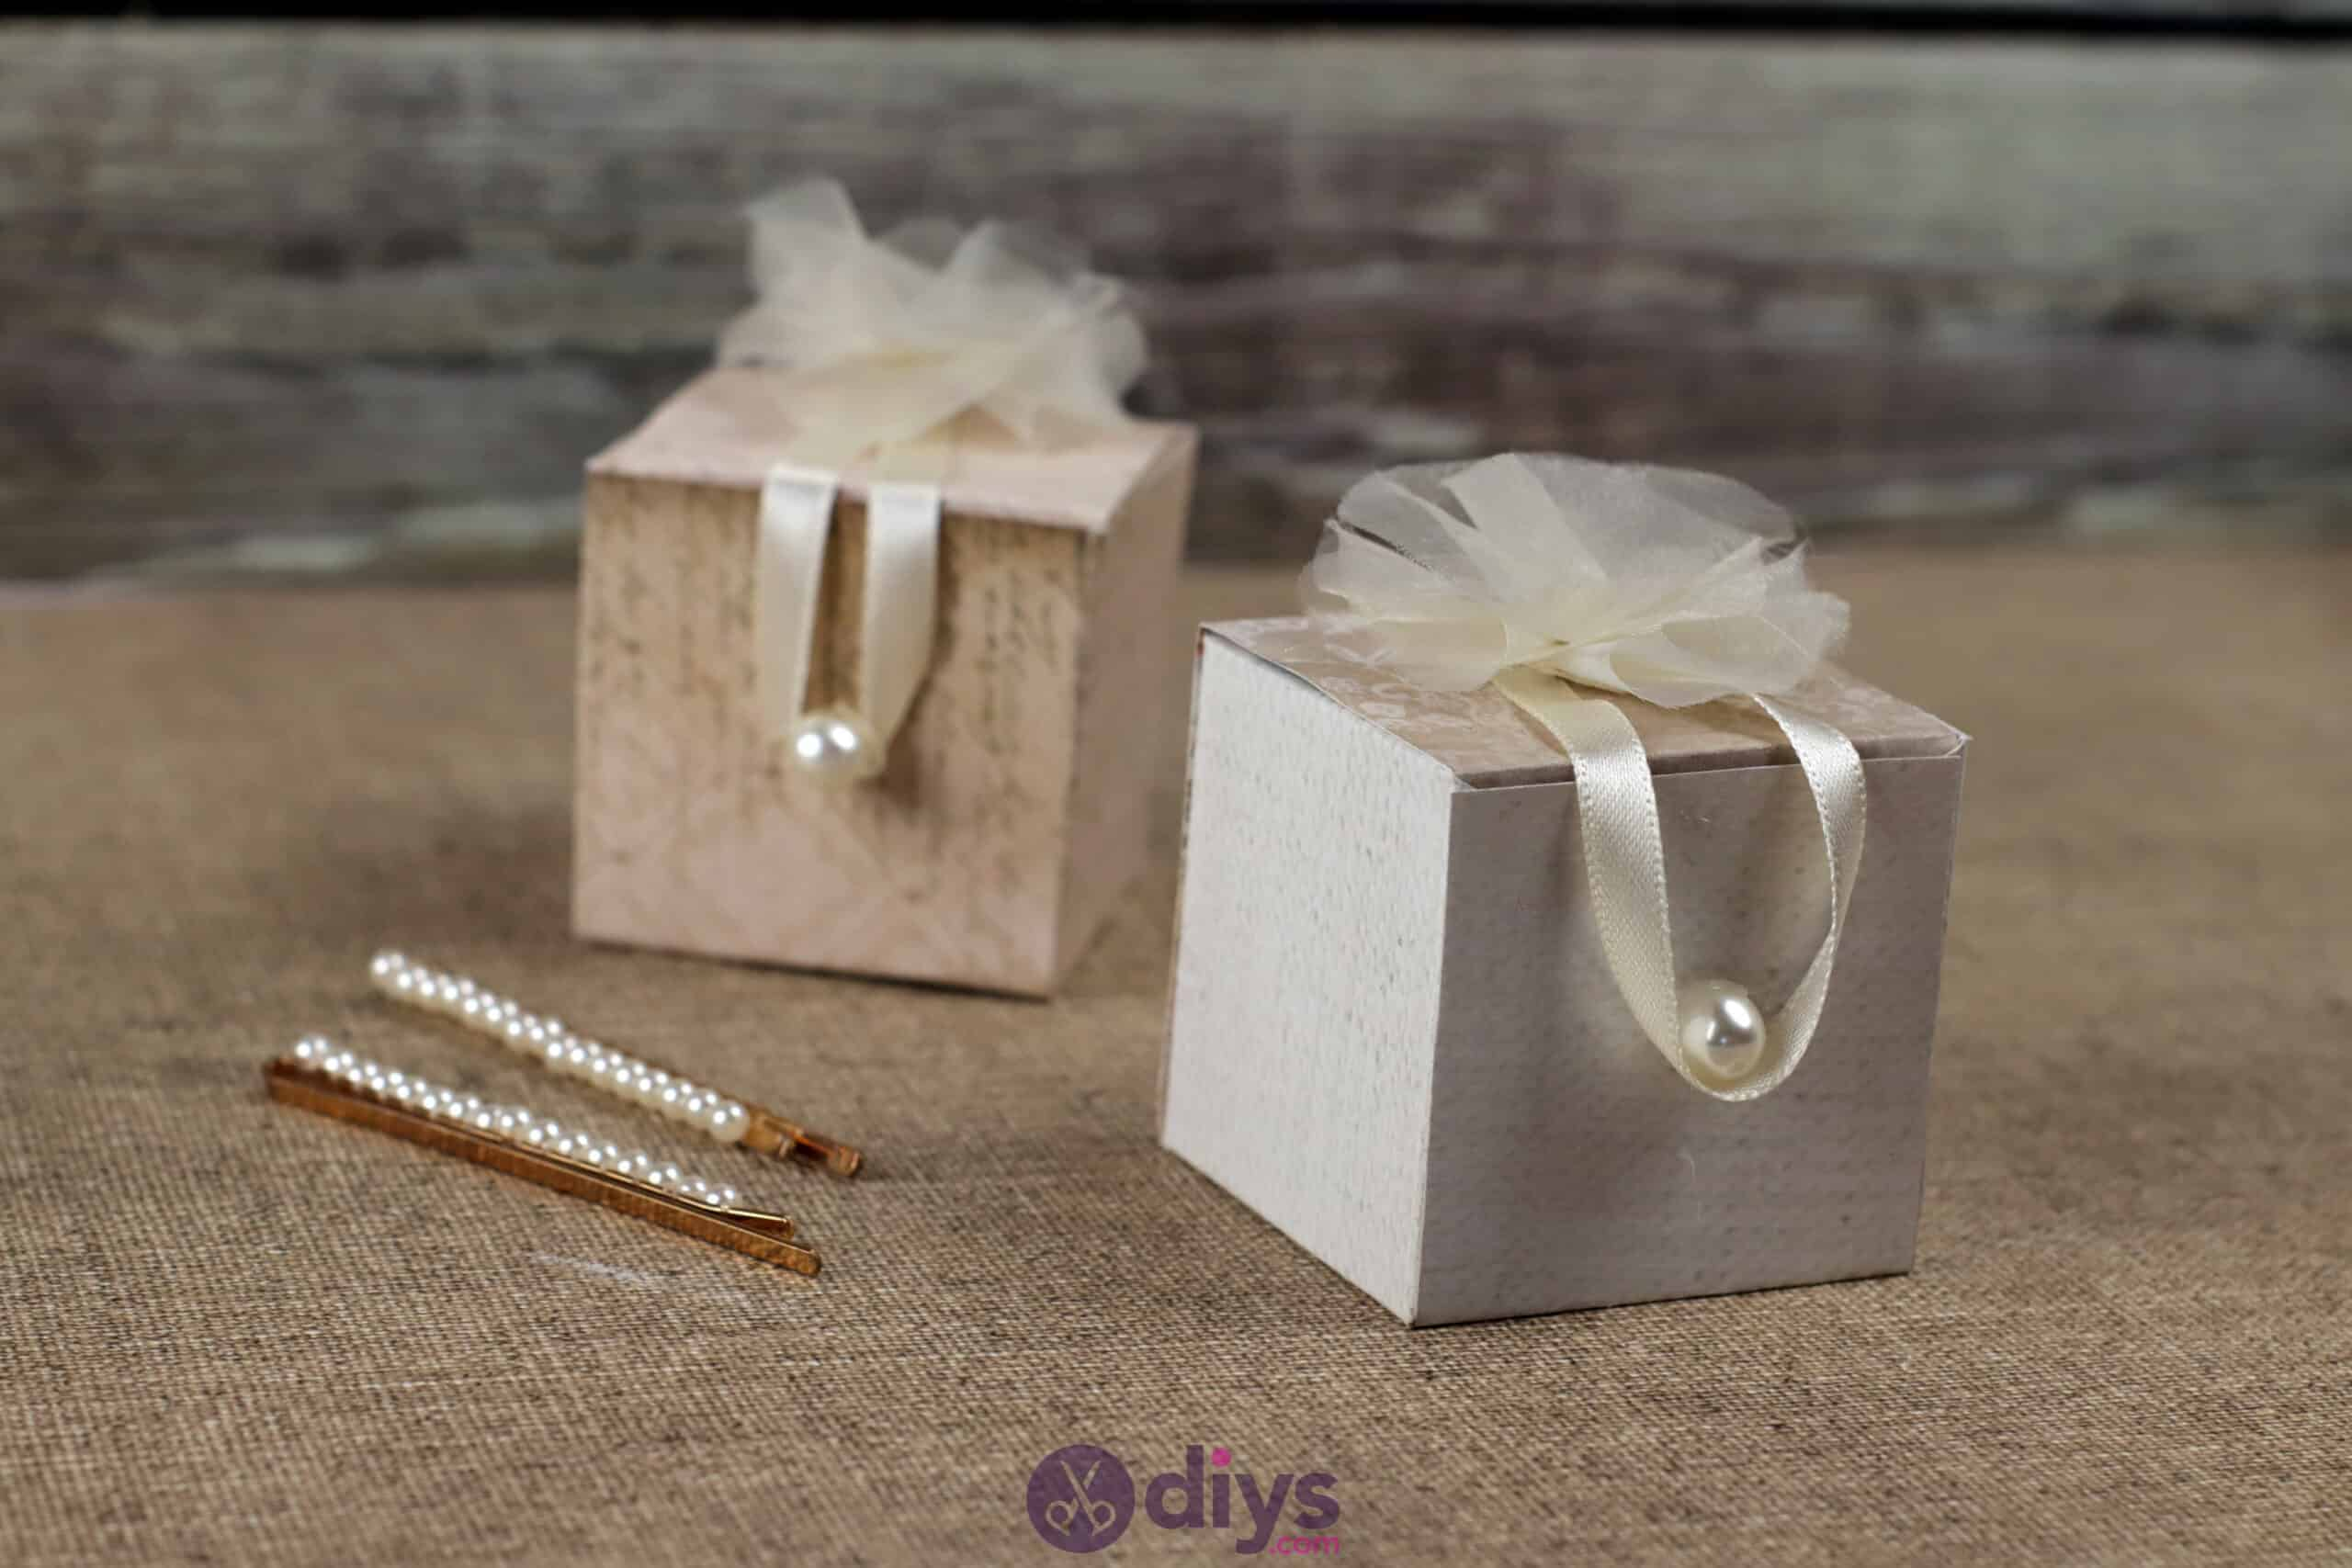 Diy mini wedding gift box simple project